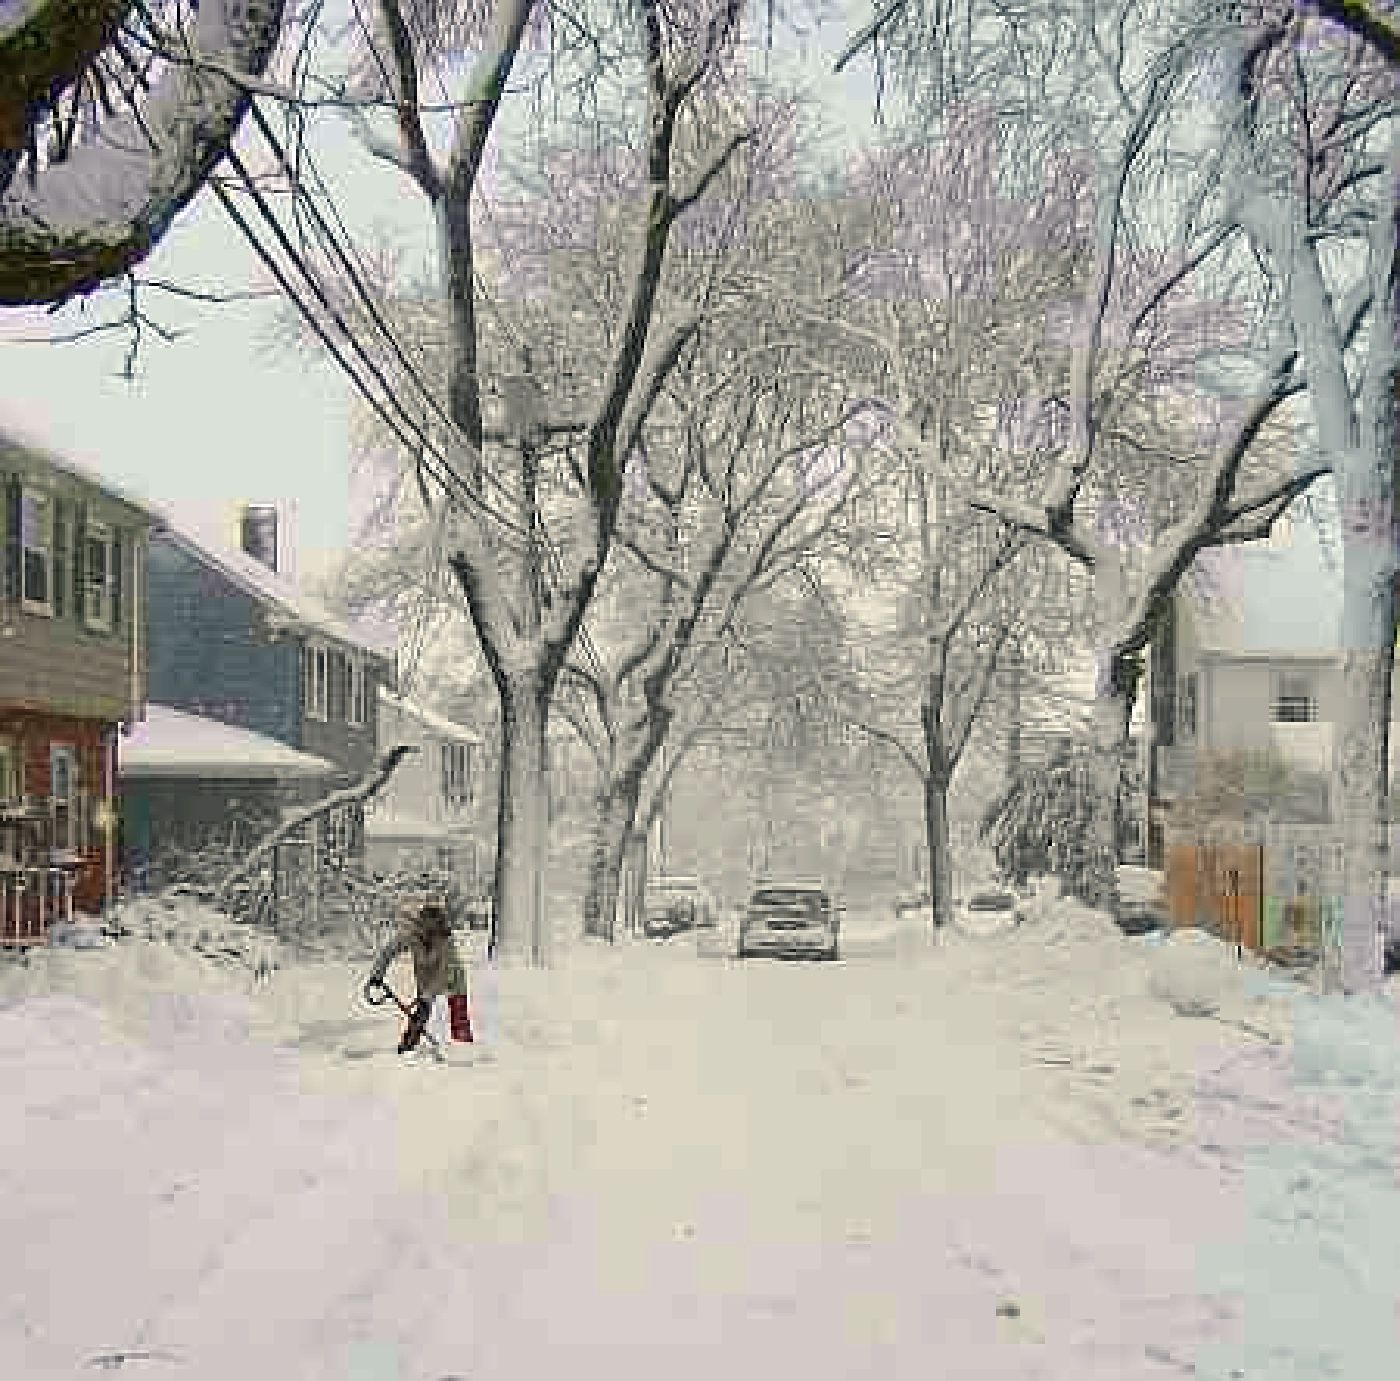 Peabody Slope, Dorchester - Blizzard 2011